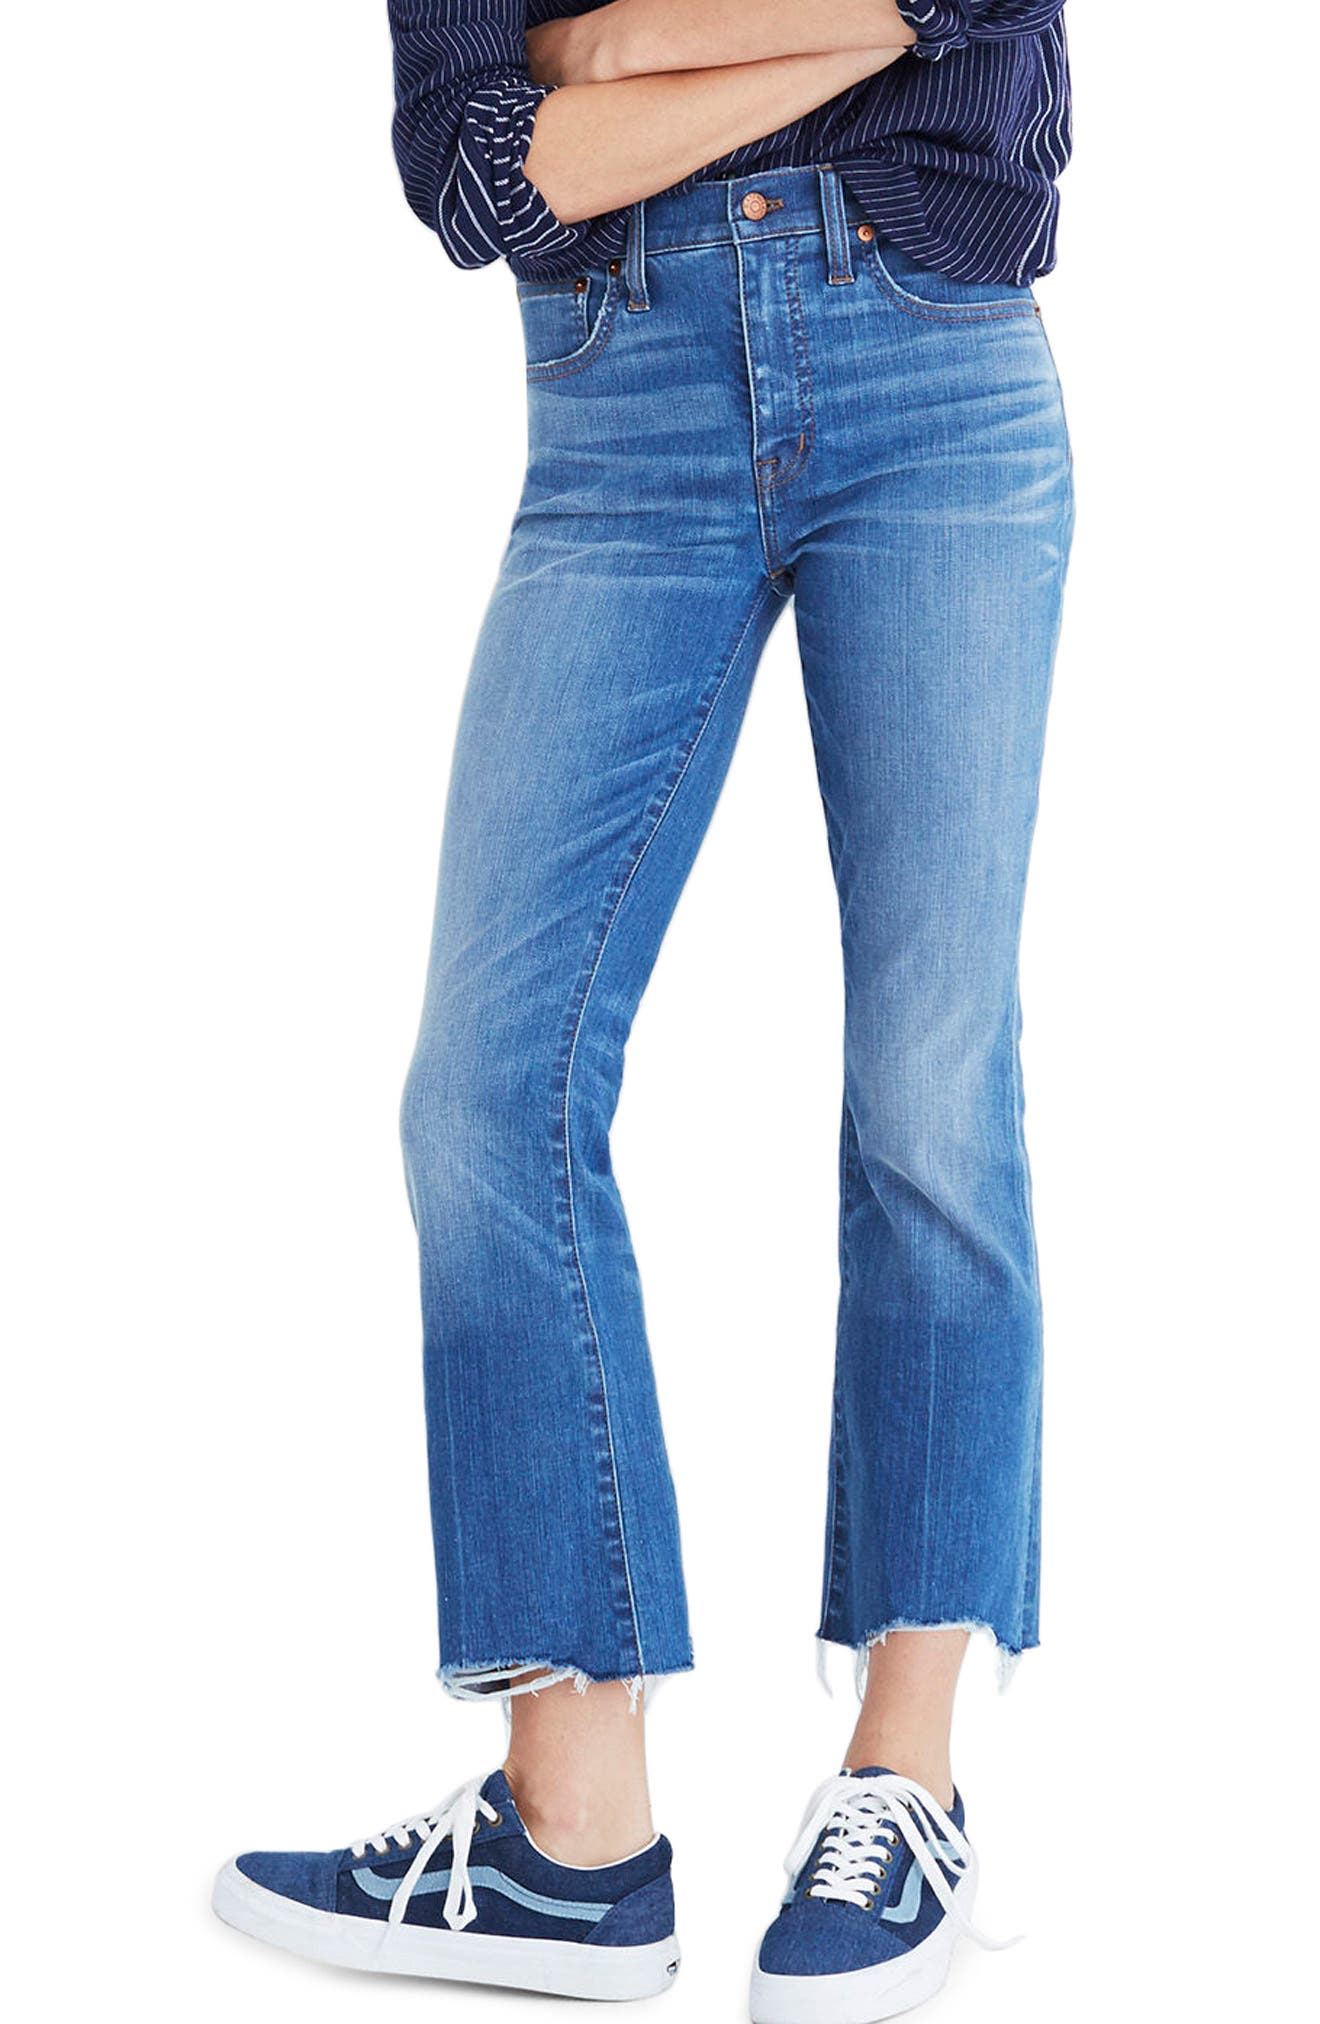 Madewell Cali Demi Boot Jeans (Haywood Wash)